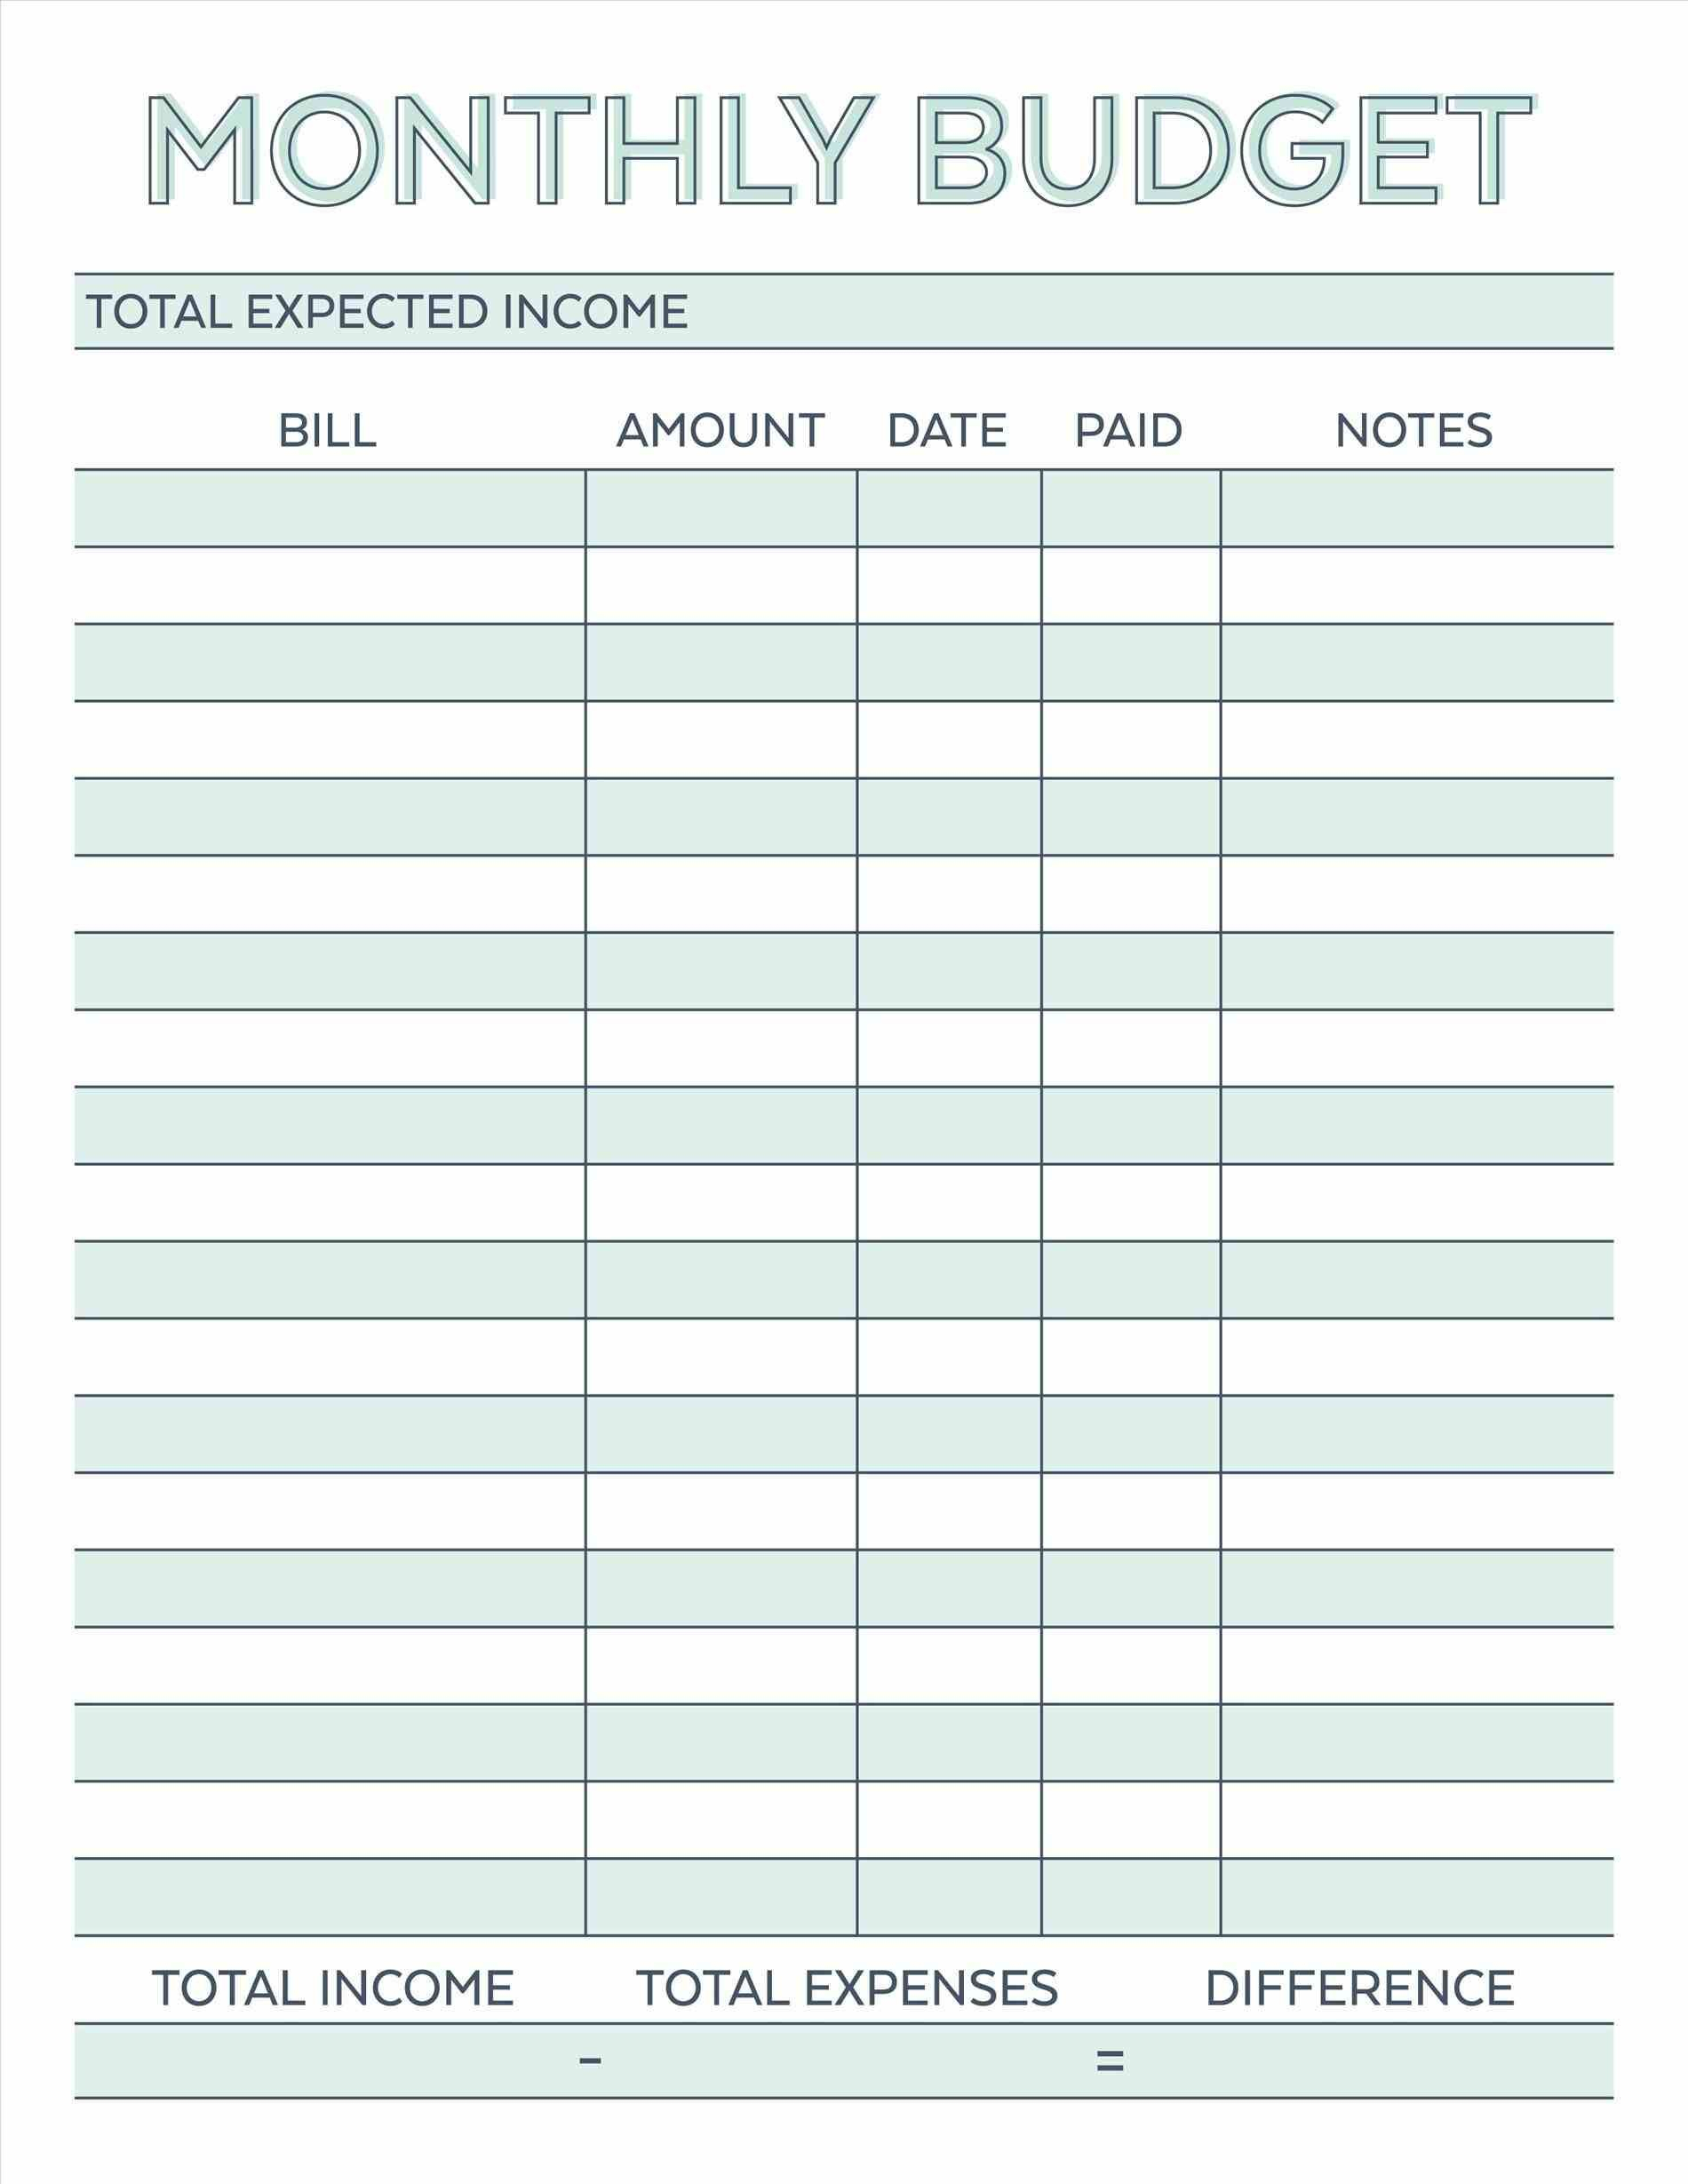 Budget Planner Planner Worksheet Monthly Bills Template Free - Free Printable Budget Planner